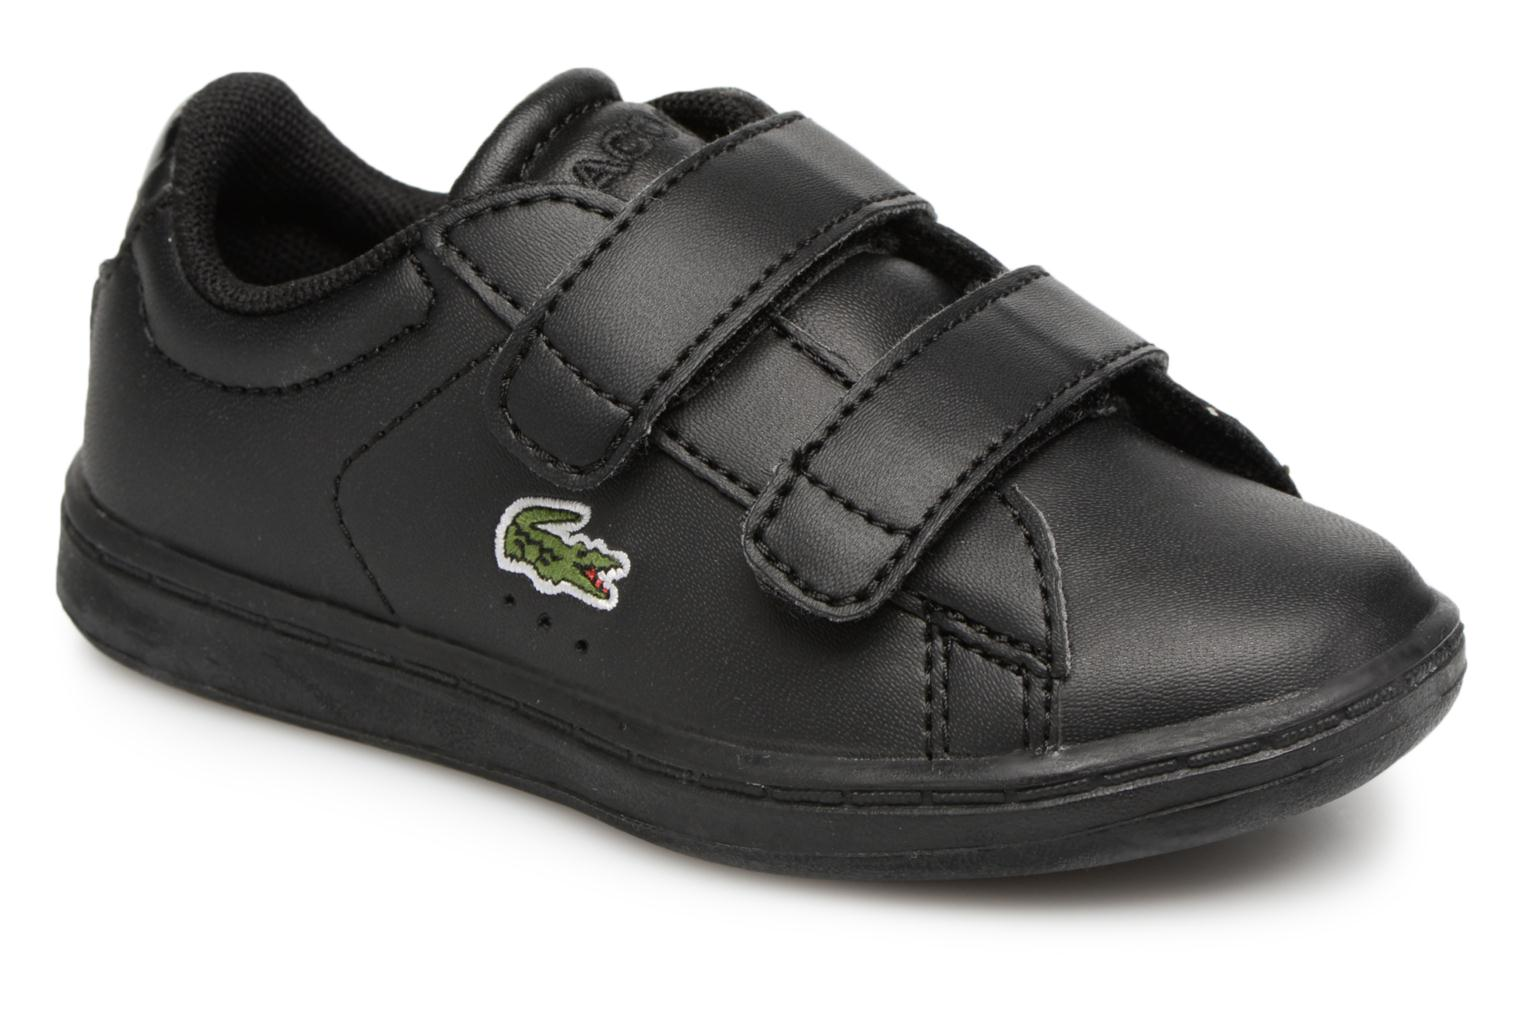 Carnaby Evo 118 4 Inf by Lacoste